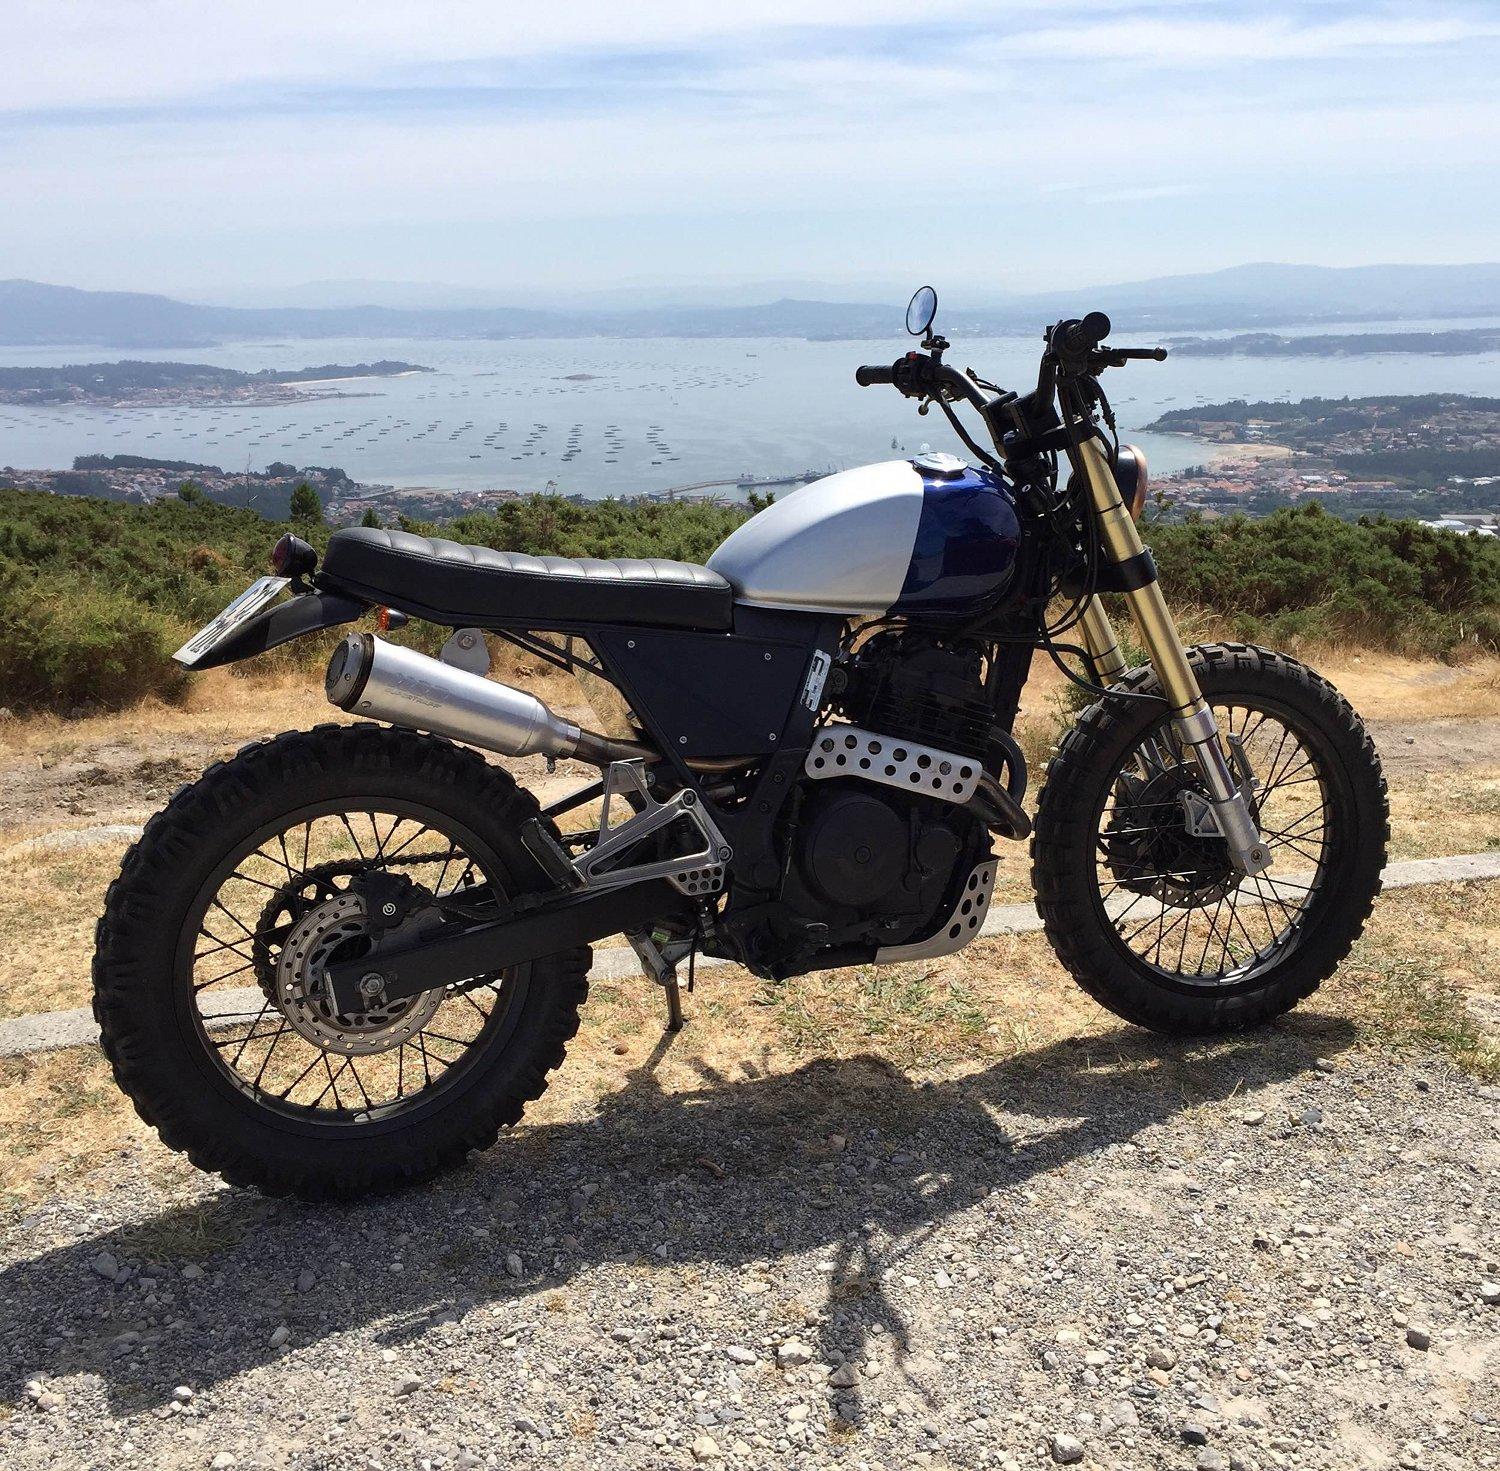 Honda Nx650 Scrambler By Mutant Motorcycles Bikebound